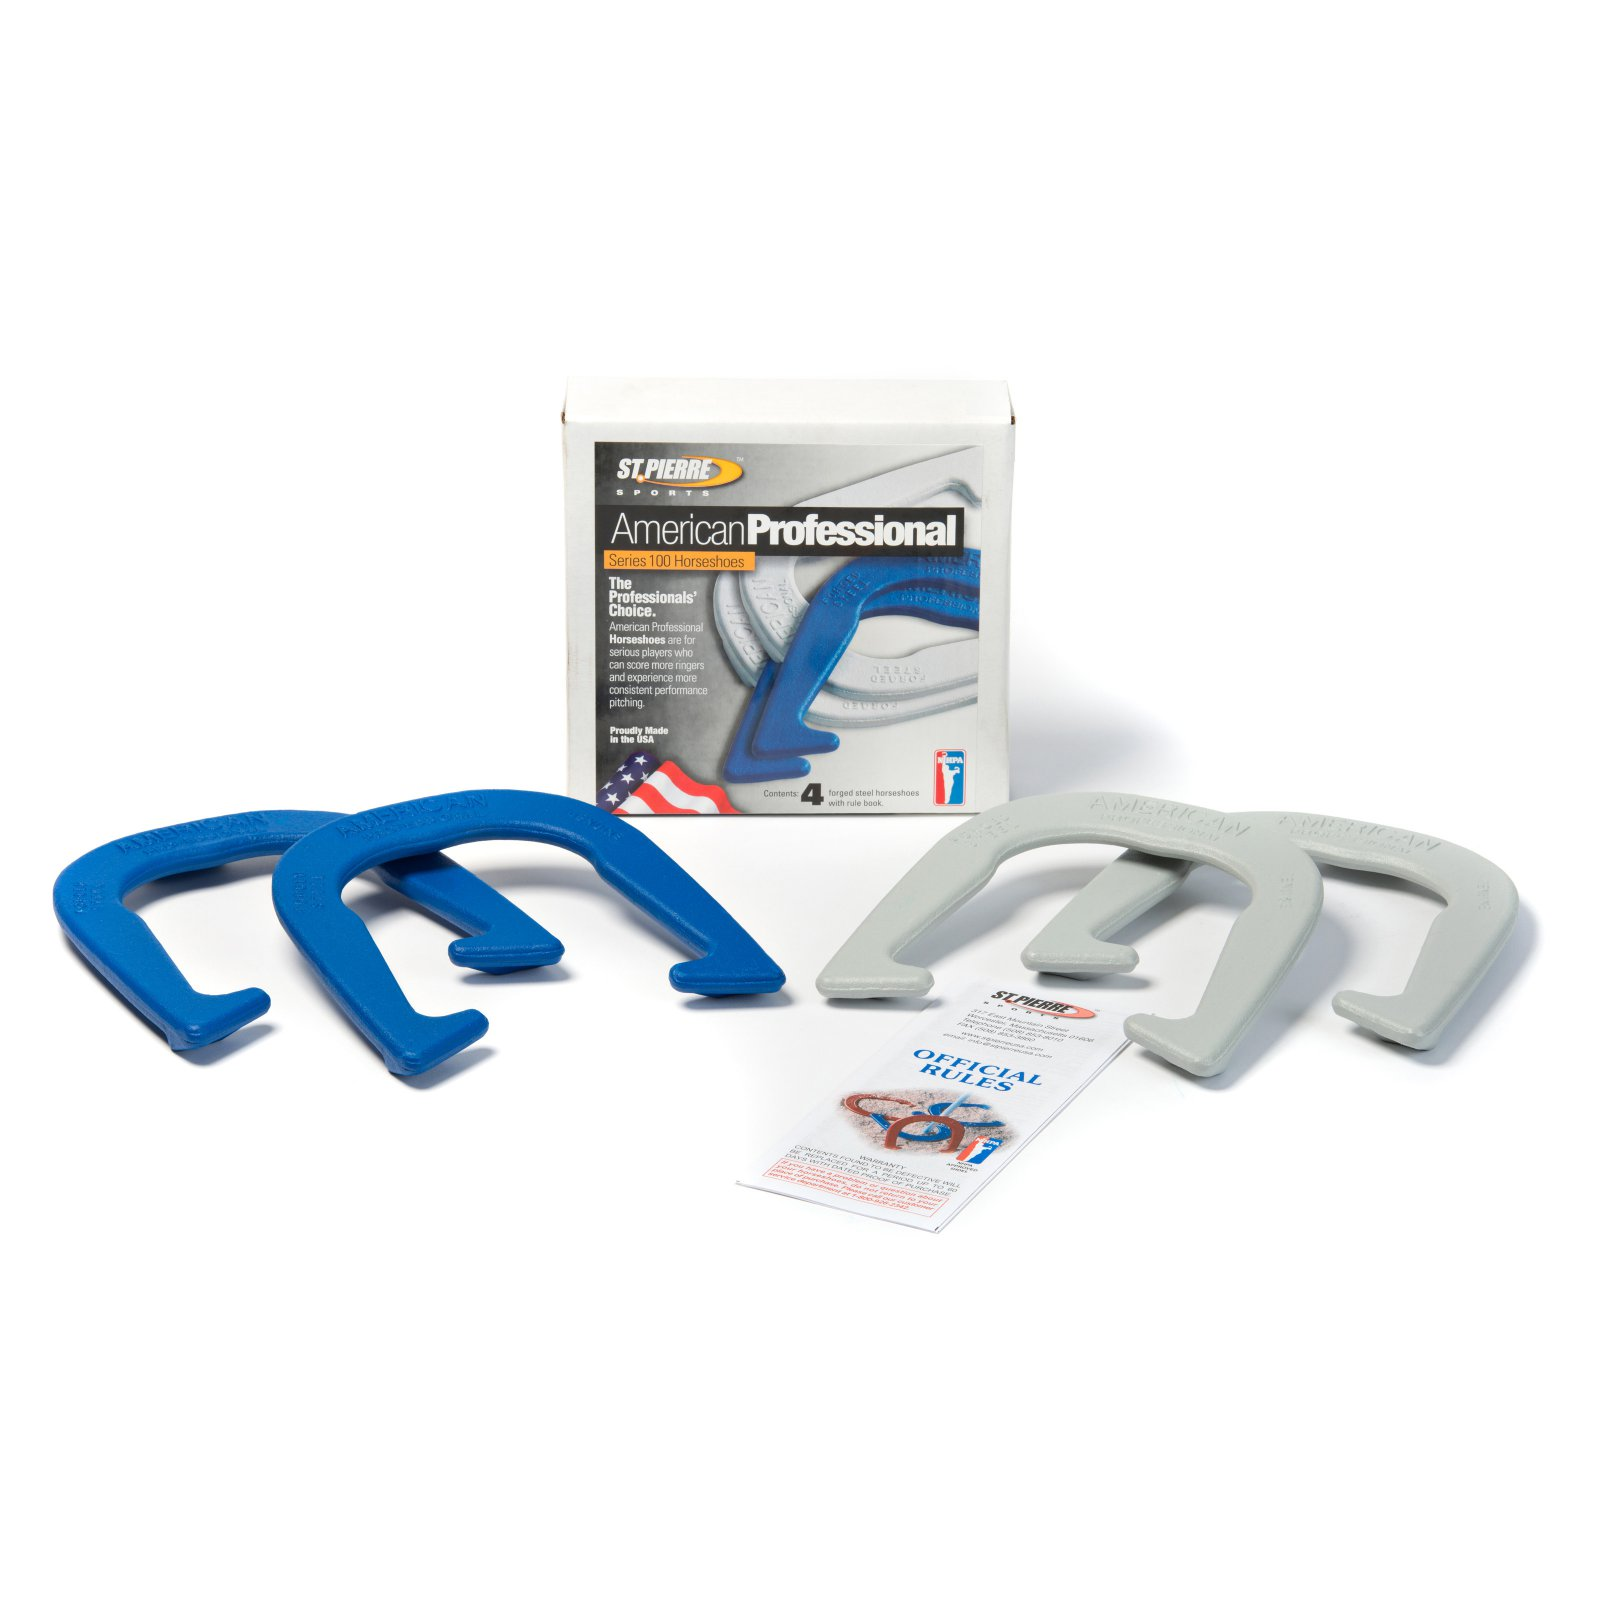 St. Pierre American Professional Horseshoe Set by ST PIERRE MFG CORP